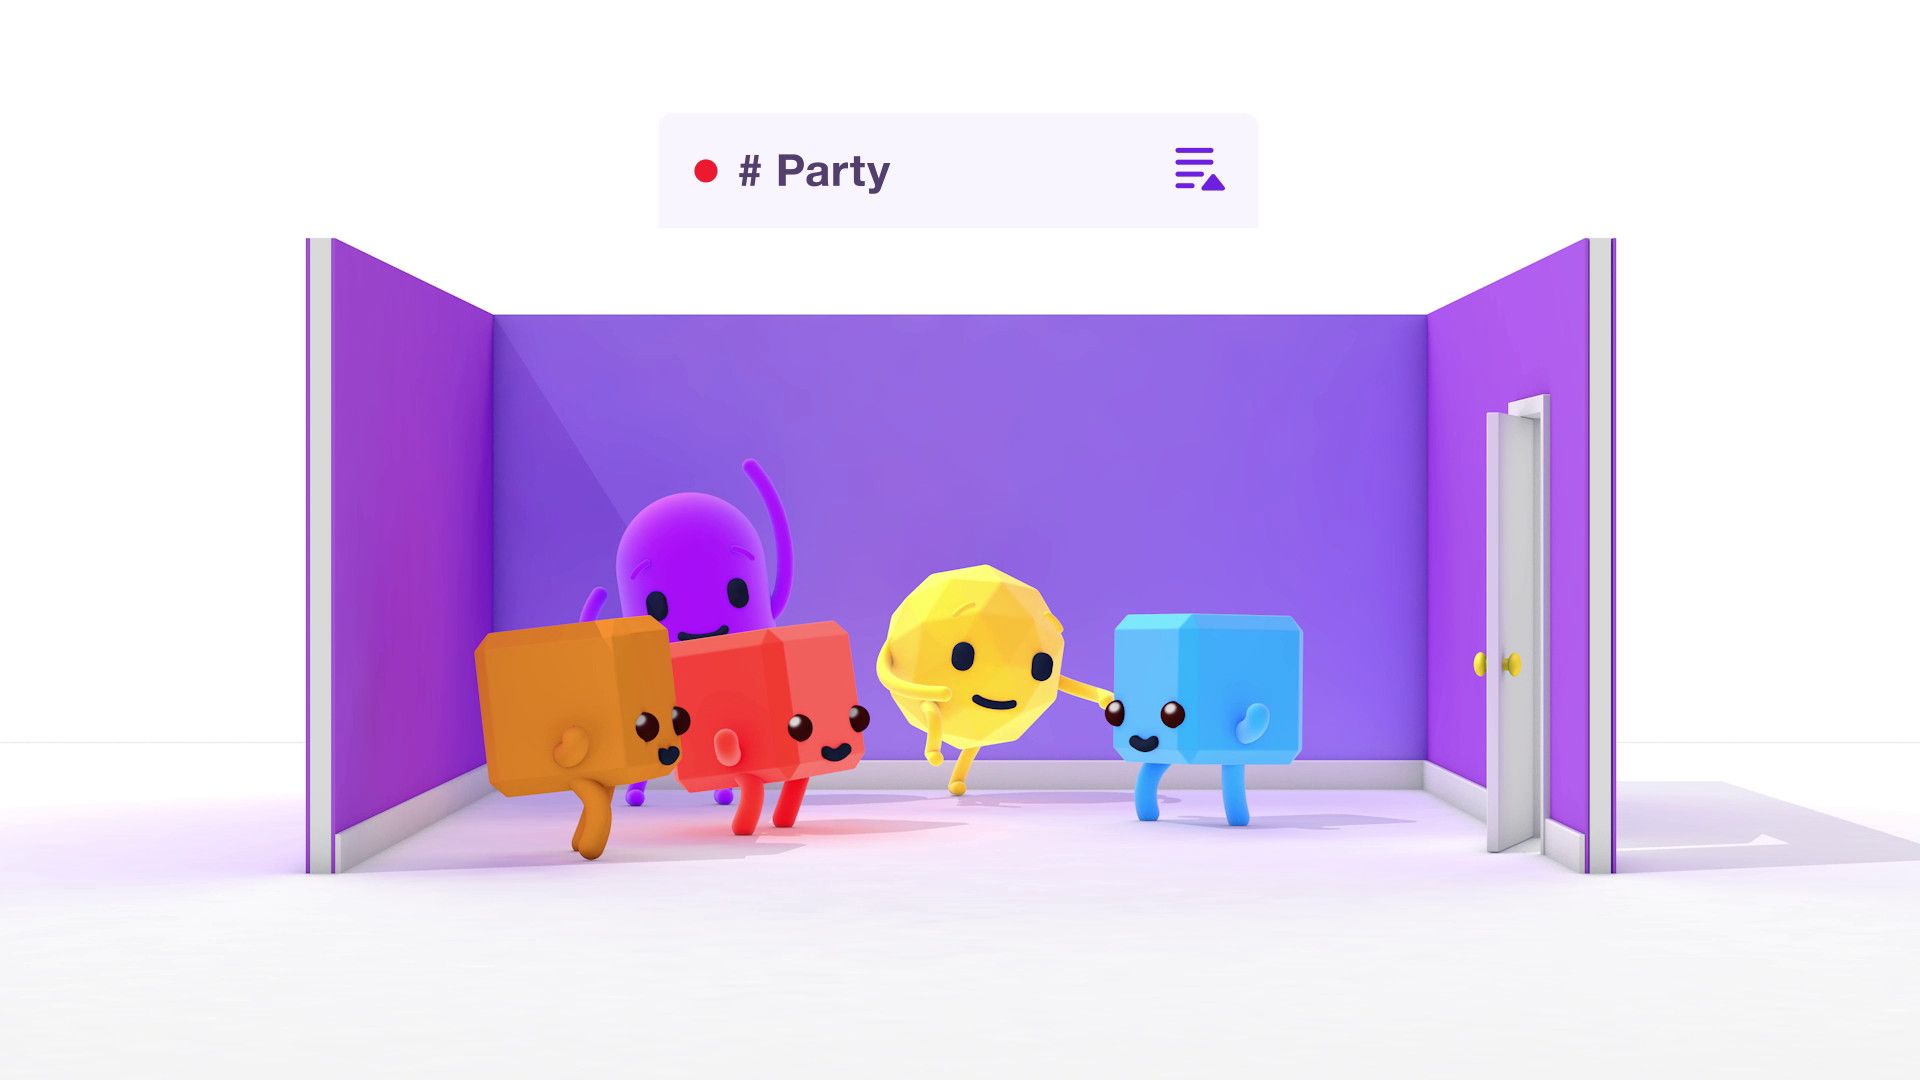 Twitch introduces new Discord-like chat Rooms for streamers